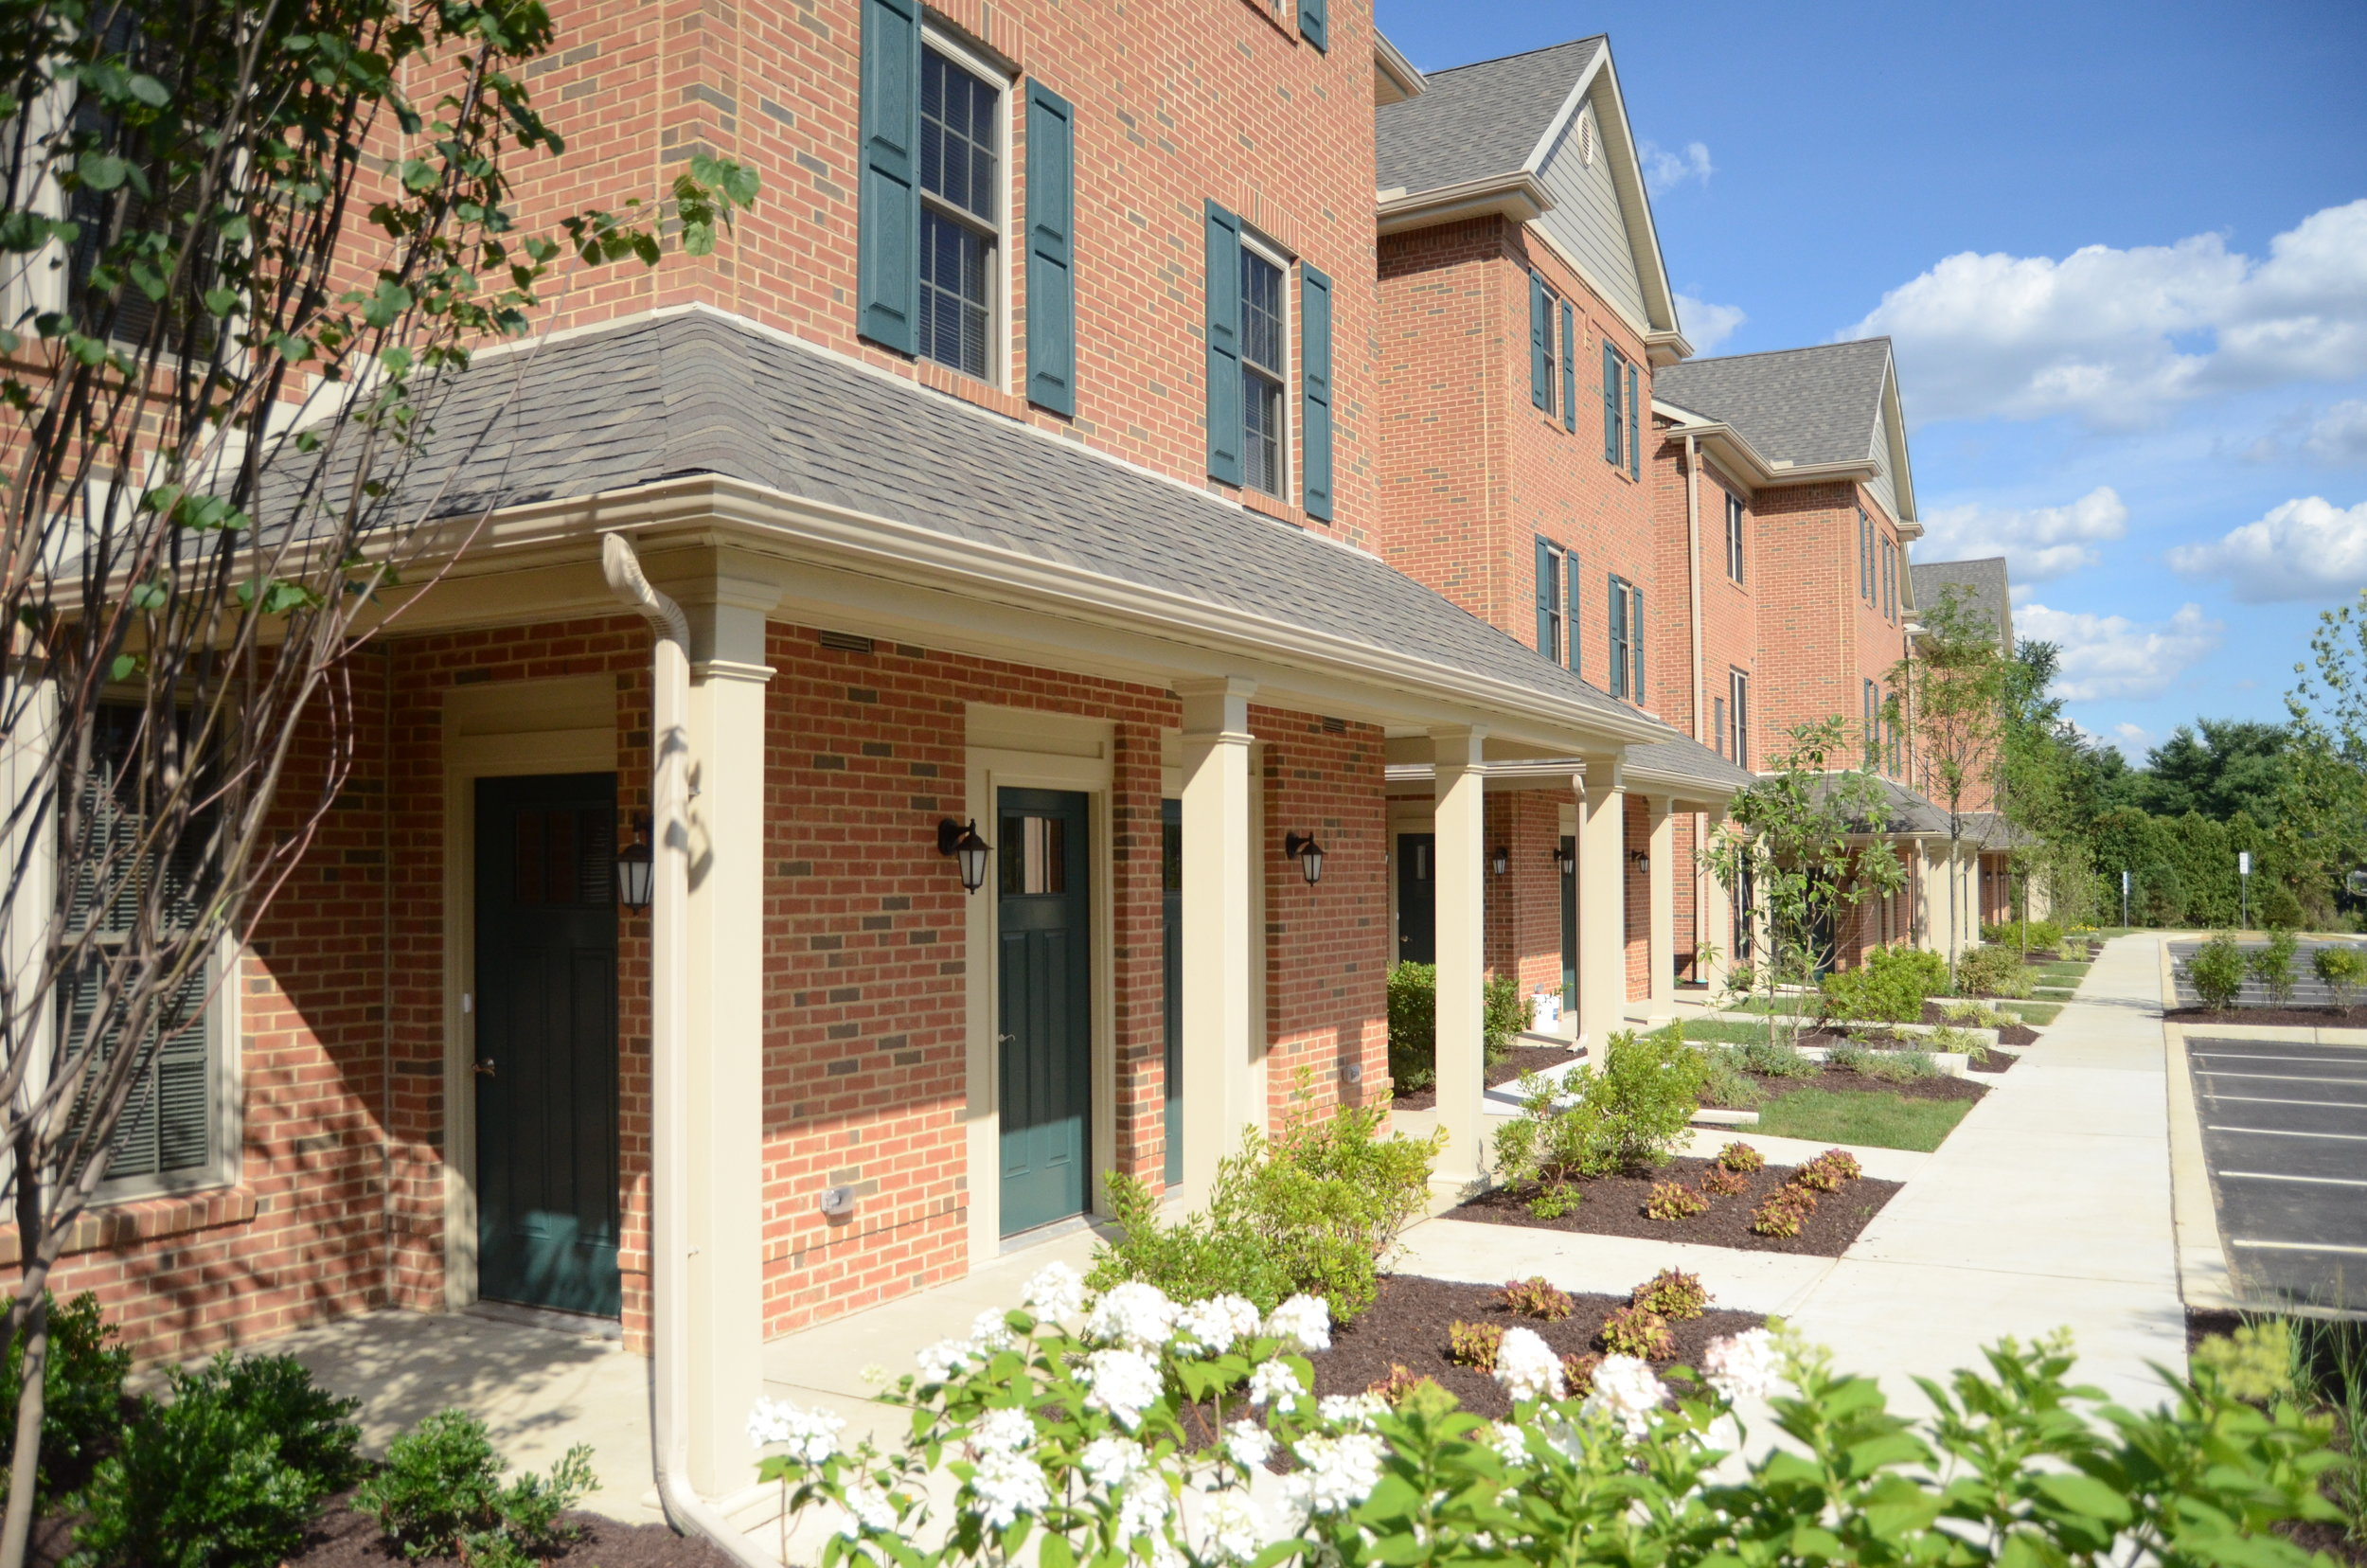 Corner Park - Leasing Office located: 300 New Kent Drive, West Chester, PA 19380(833) 246-0284Luxury 1, 2, & 3 Bedroom Apartment HomesAccess to New Kent AmenitiesEnclosed Dog Park, Fire Pits & Lounges on-site